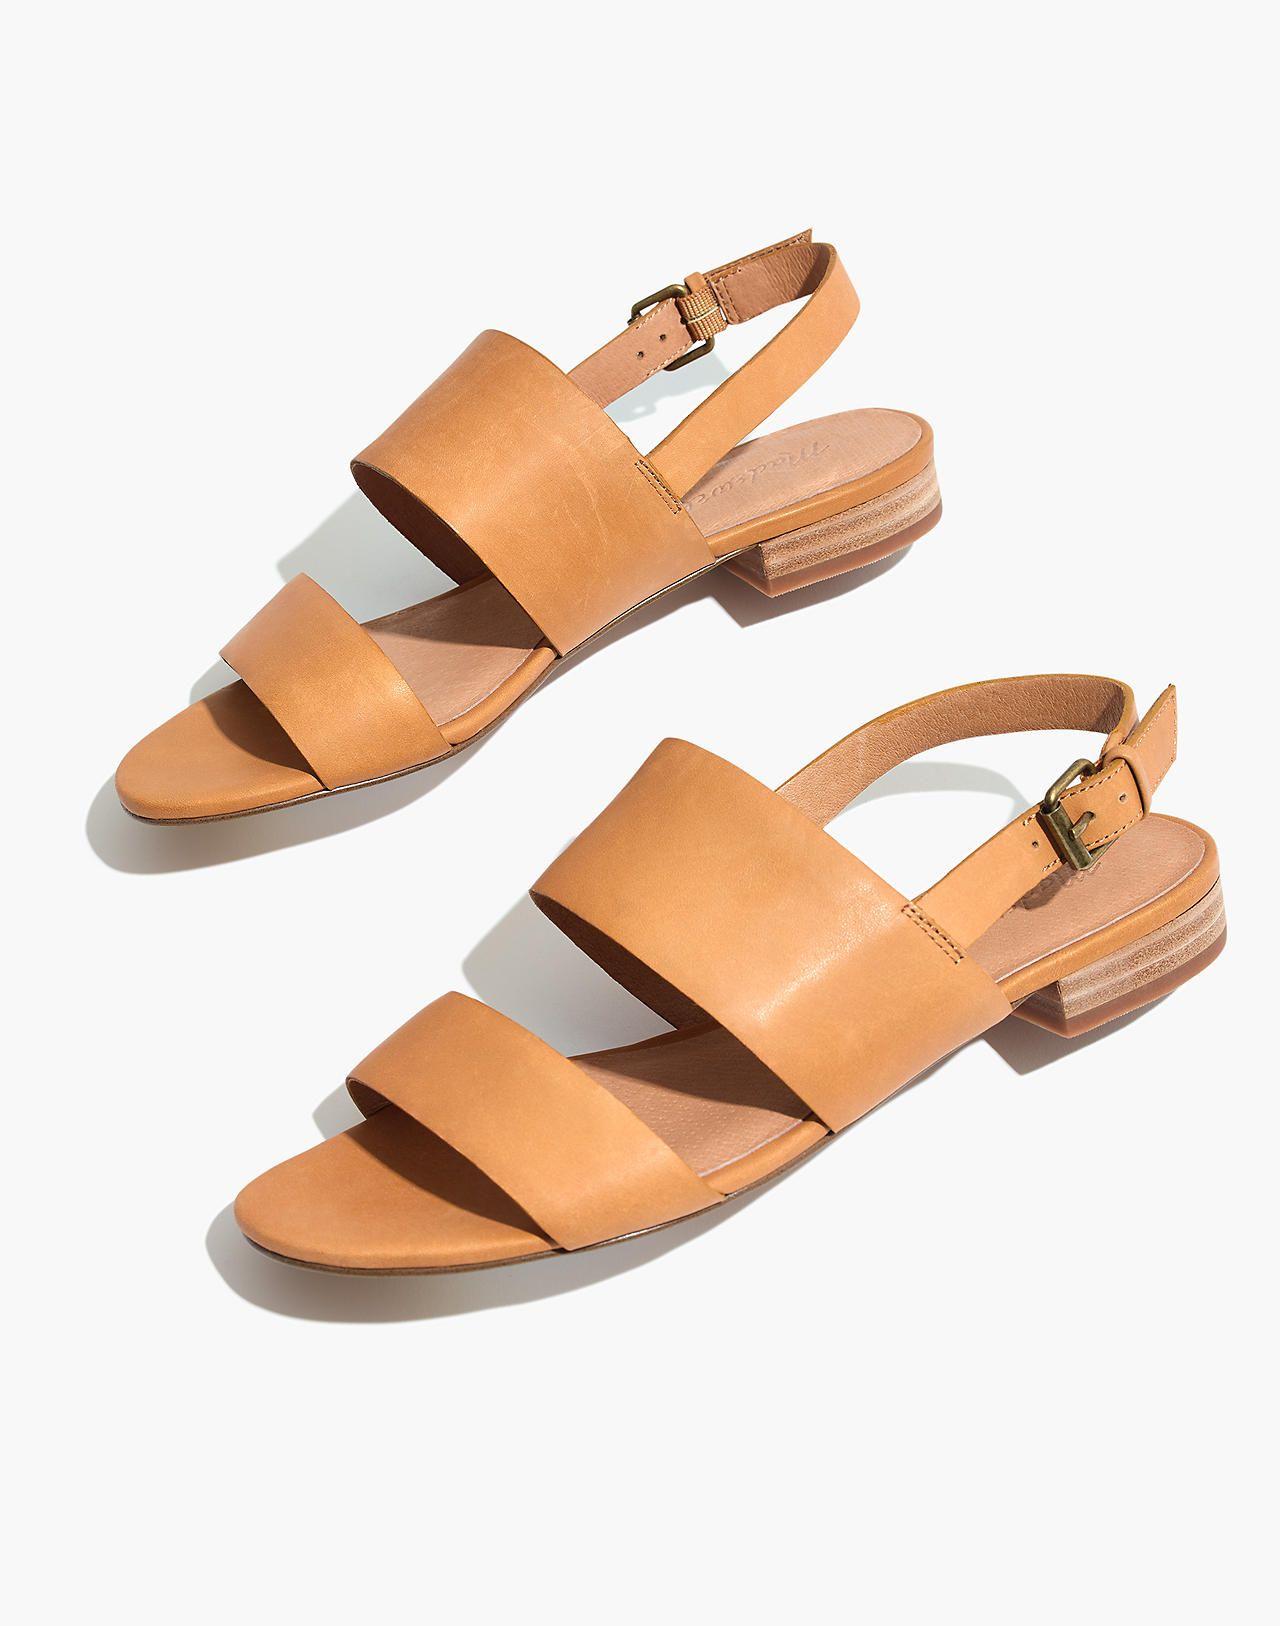 The Elena Slingback Sandal (With images